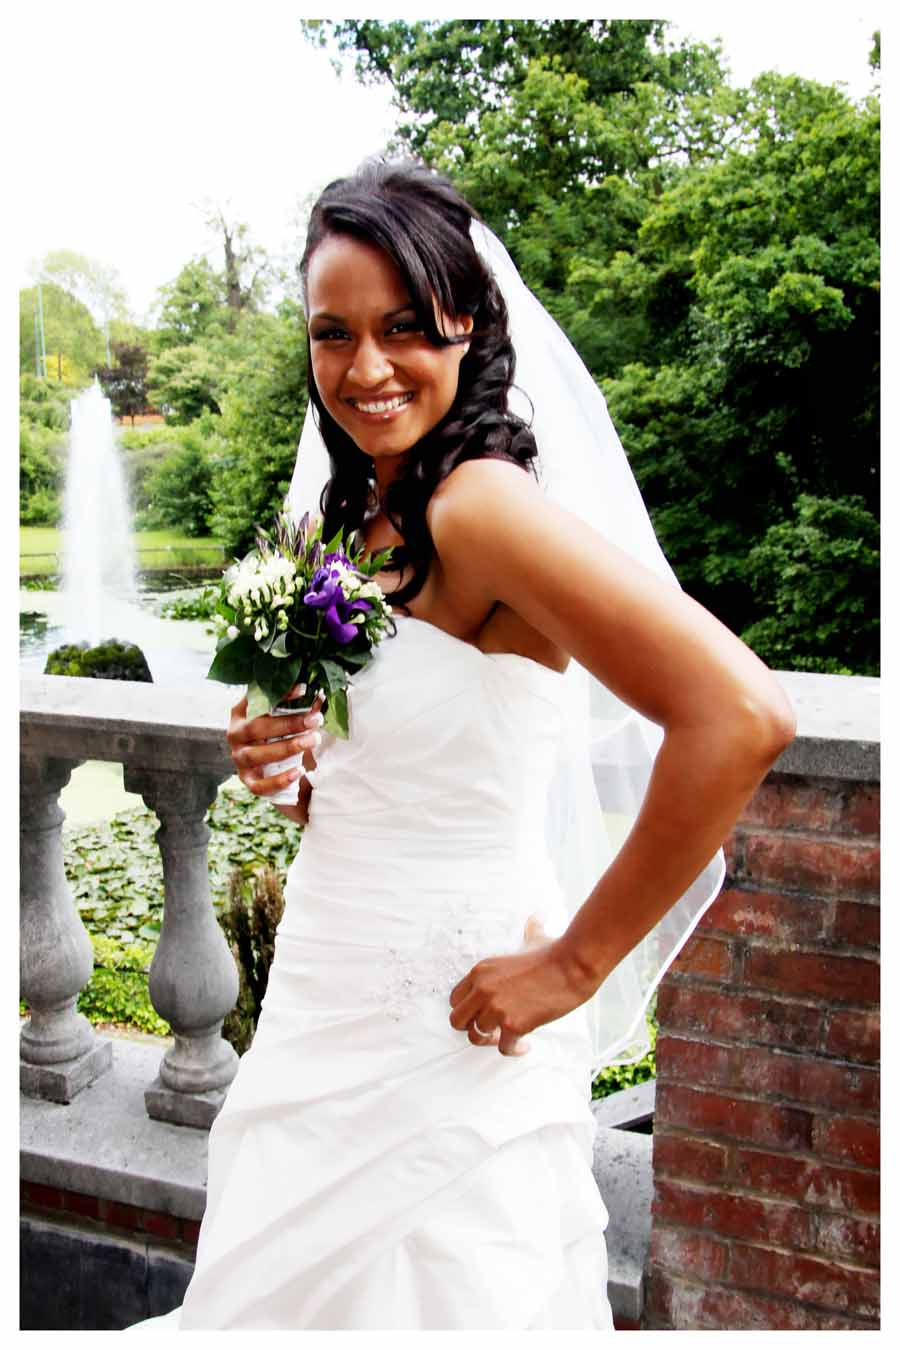 BRIDE Photos by Simeon Thaw copyright 2014 (16).jpg